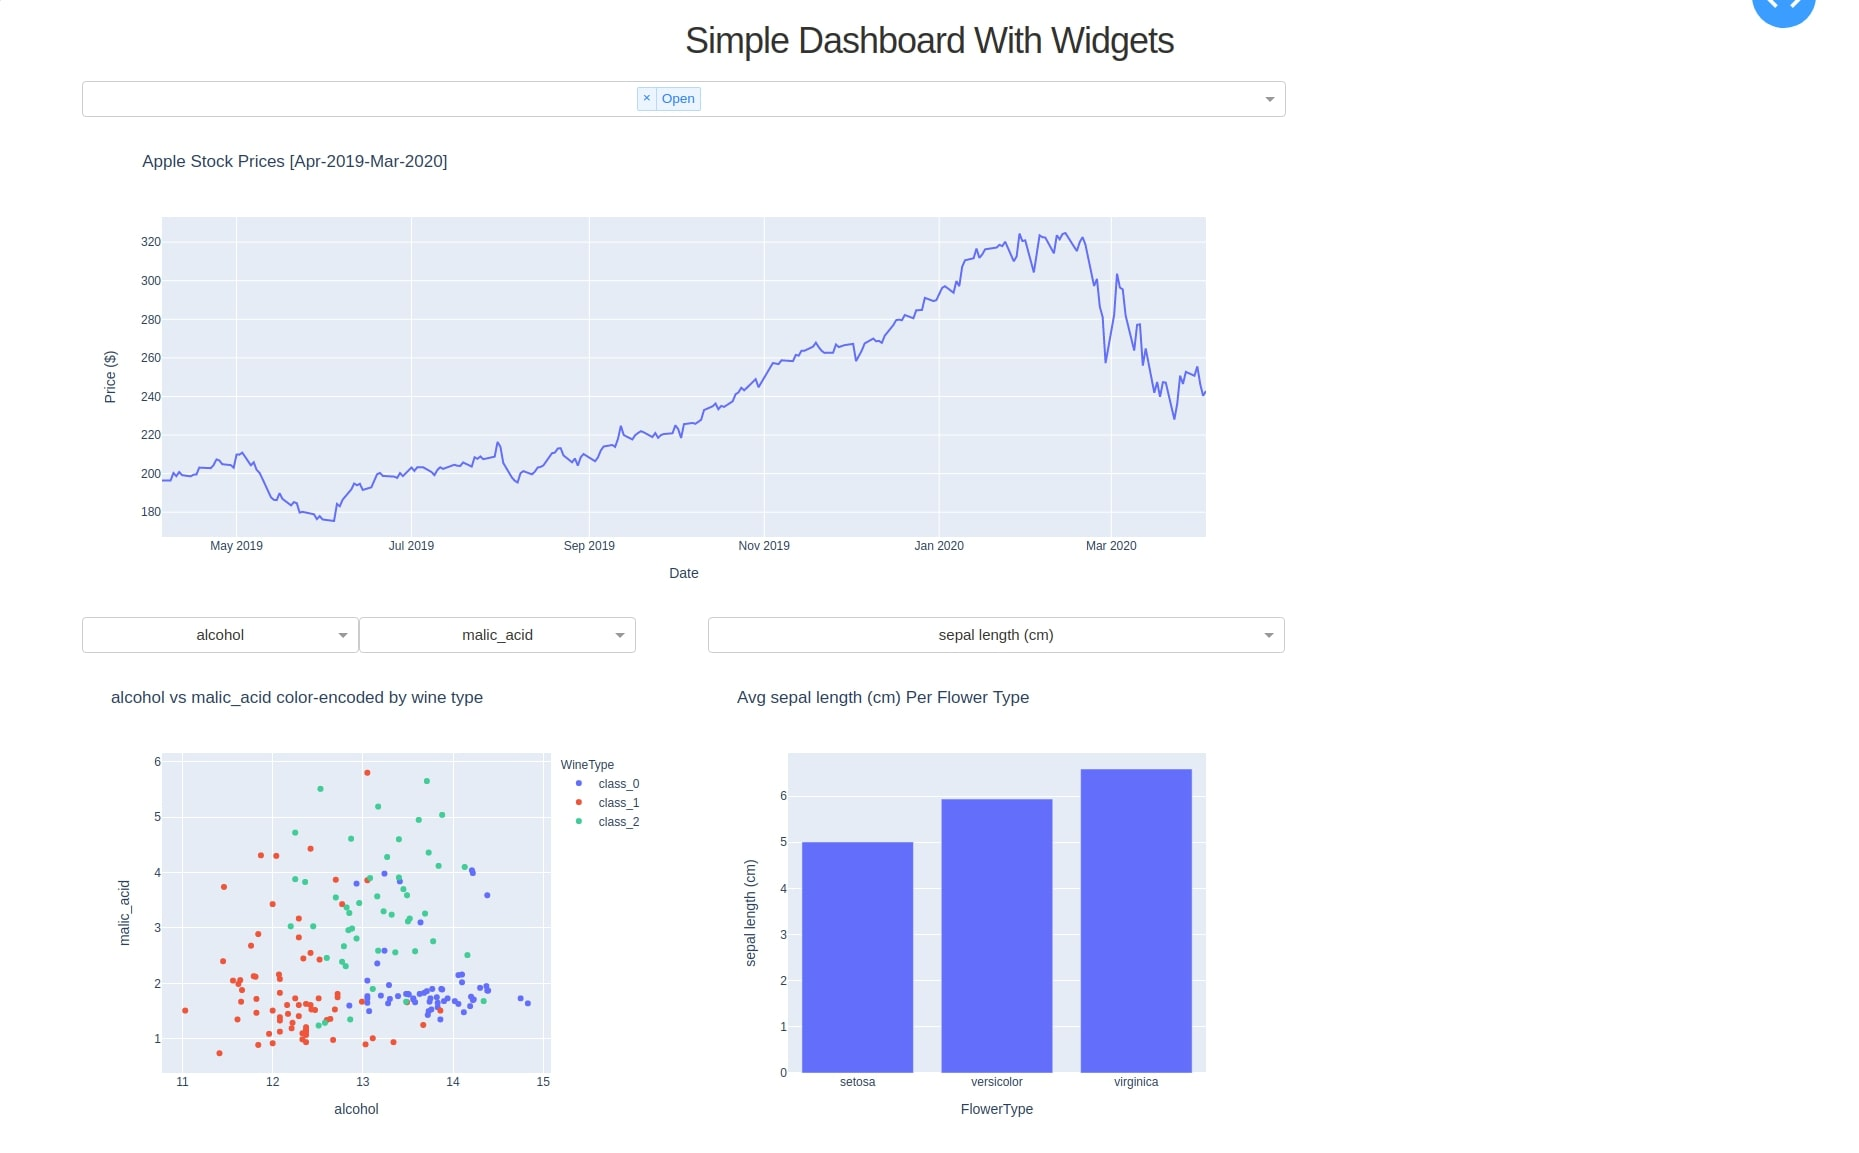 How to Create Basic Dashboard in Python with Widgets [plotly & Dash]?